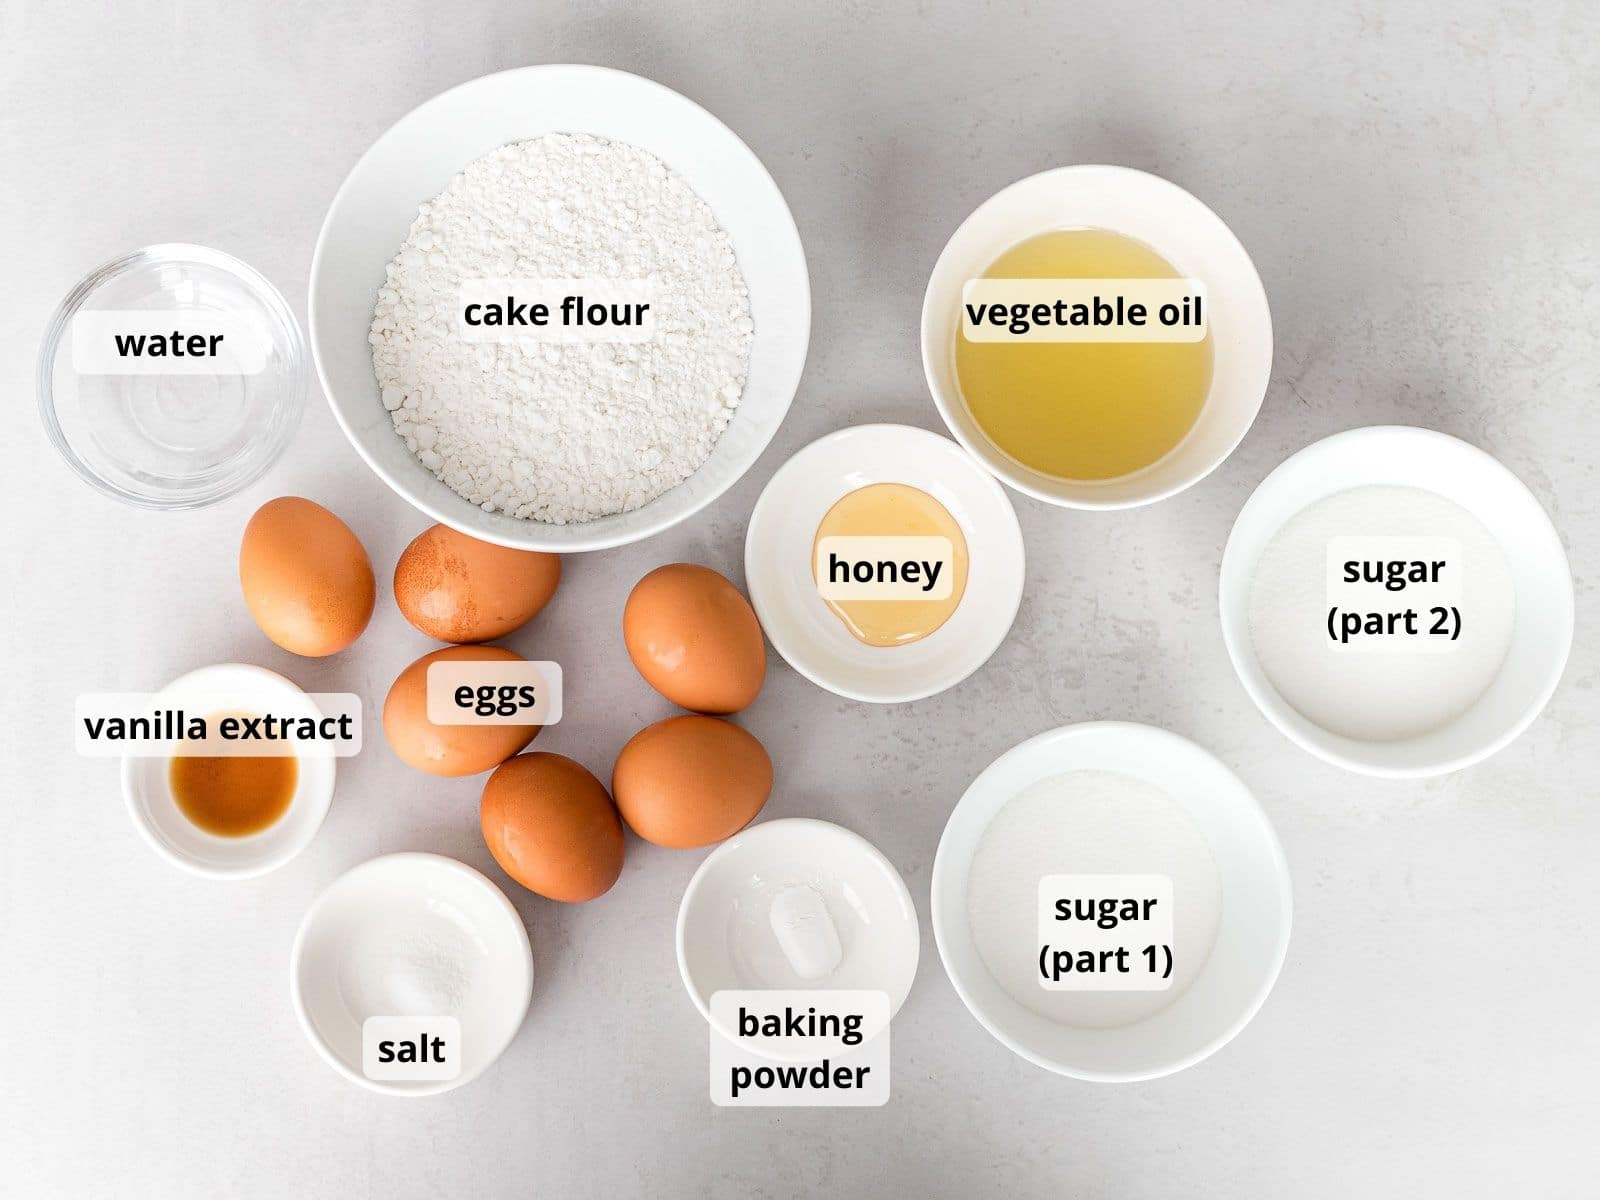 labeled photo of ingredients for Japanese strawberry shortcake in white bowls that includes eggs, cake flour, and sugar